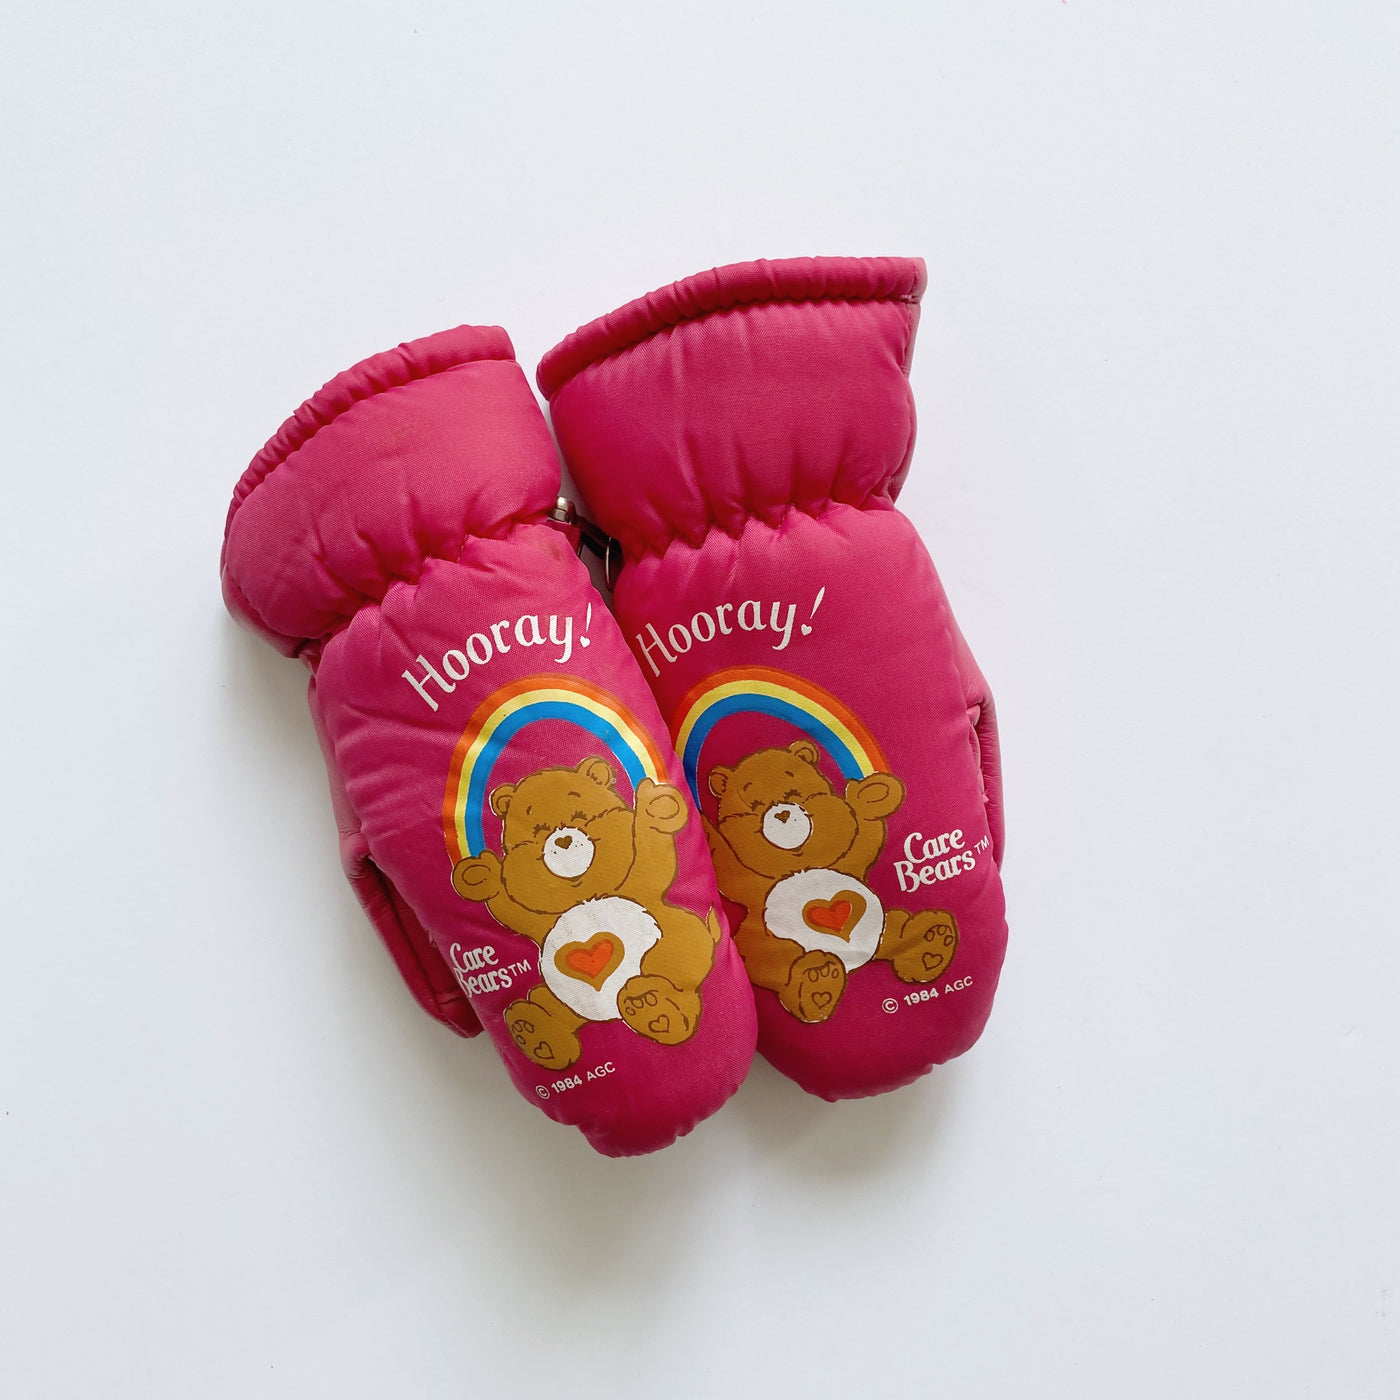 Vintage 1984 Care Bears Gloves / Size 1-2T